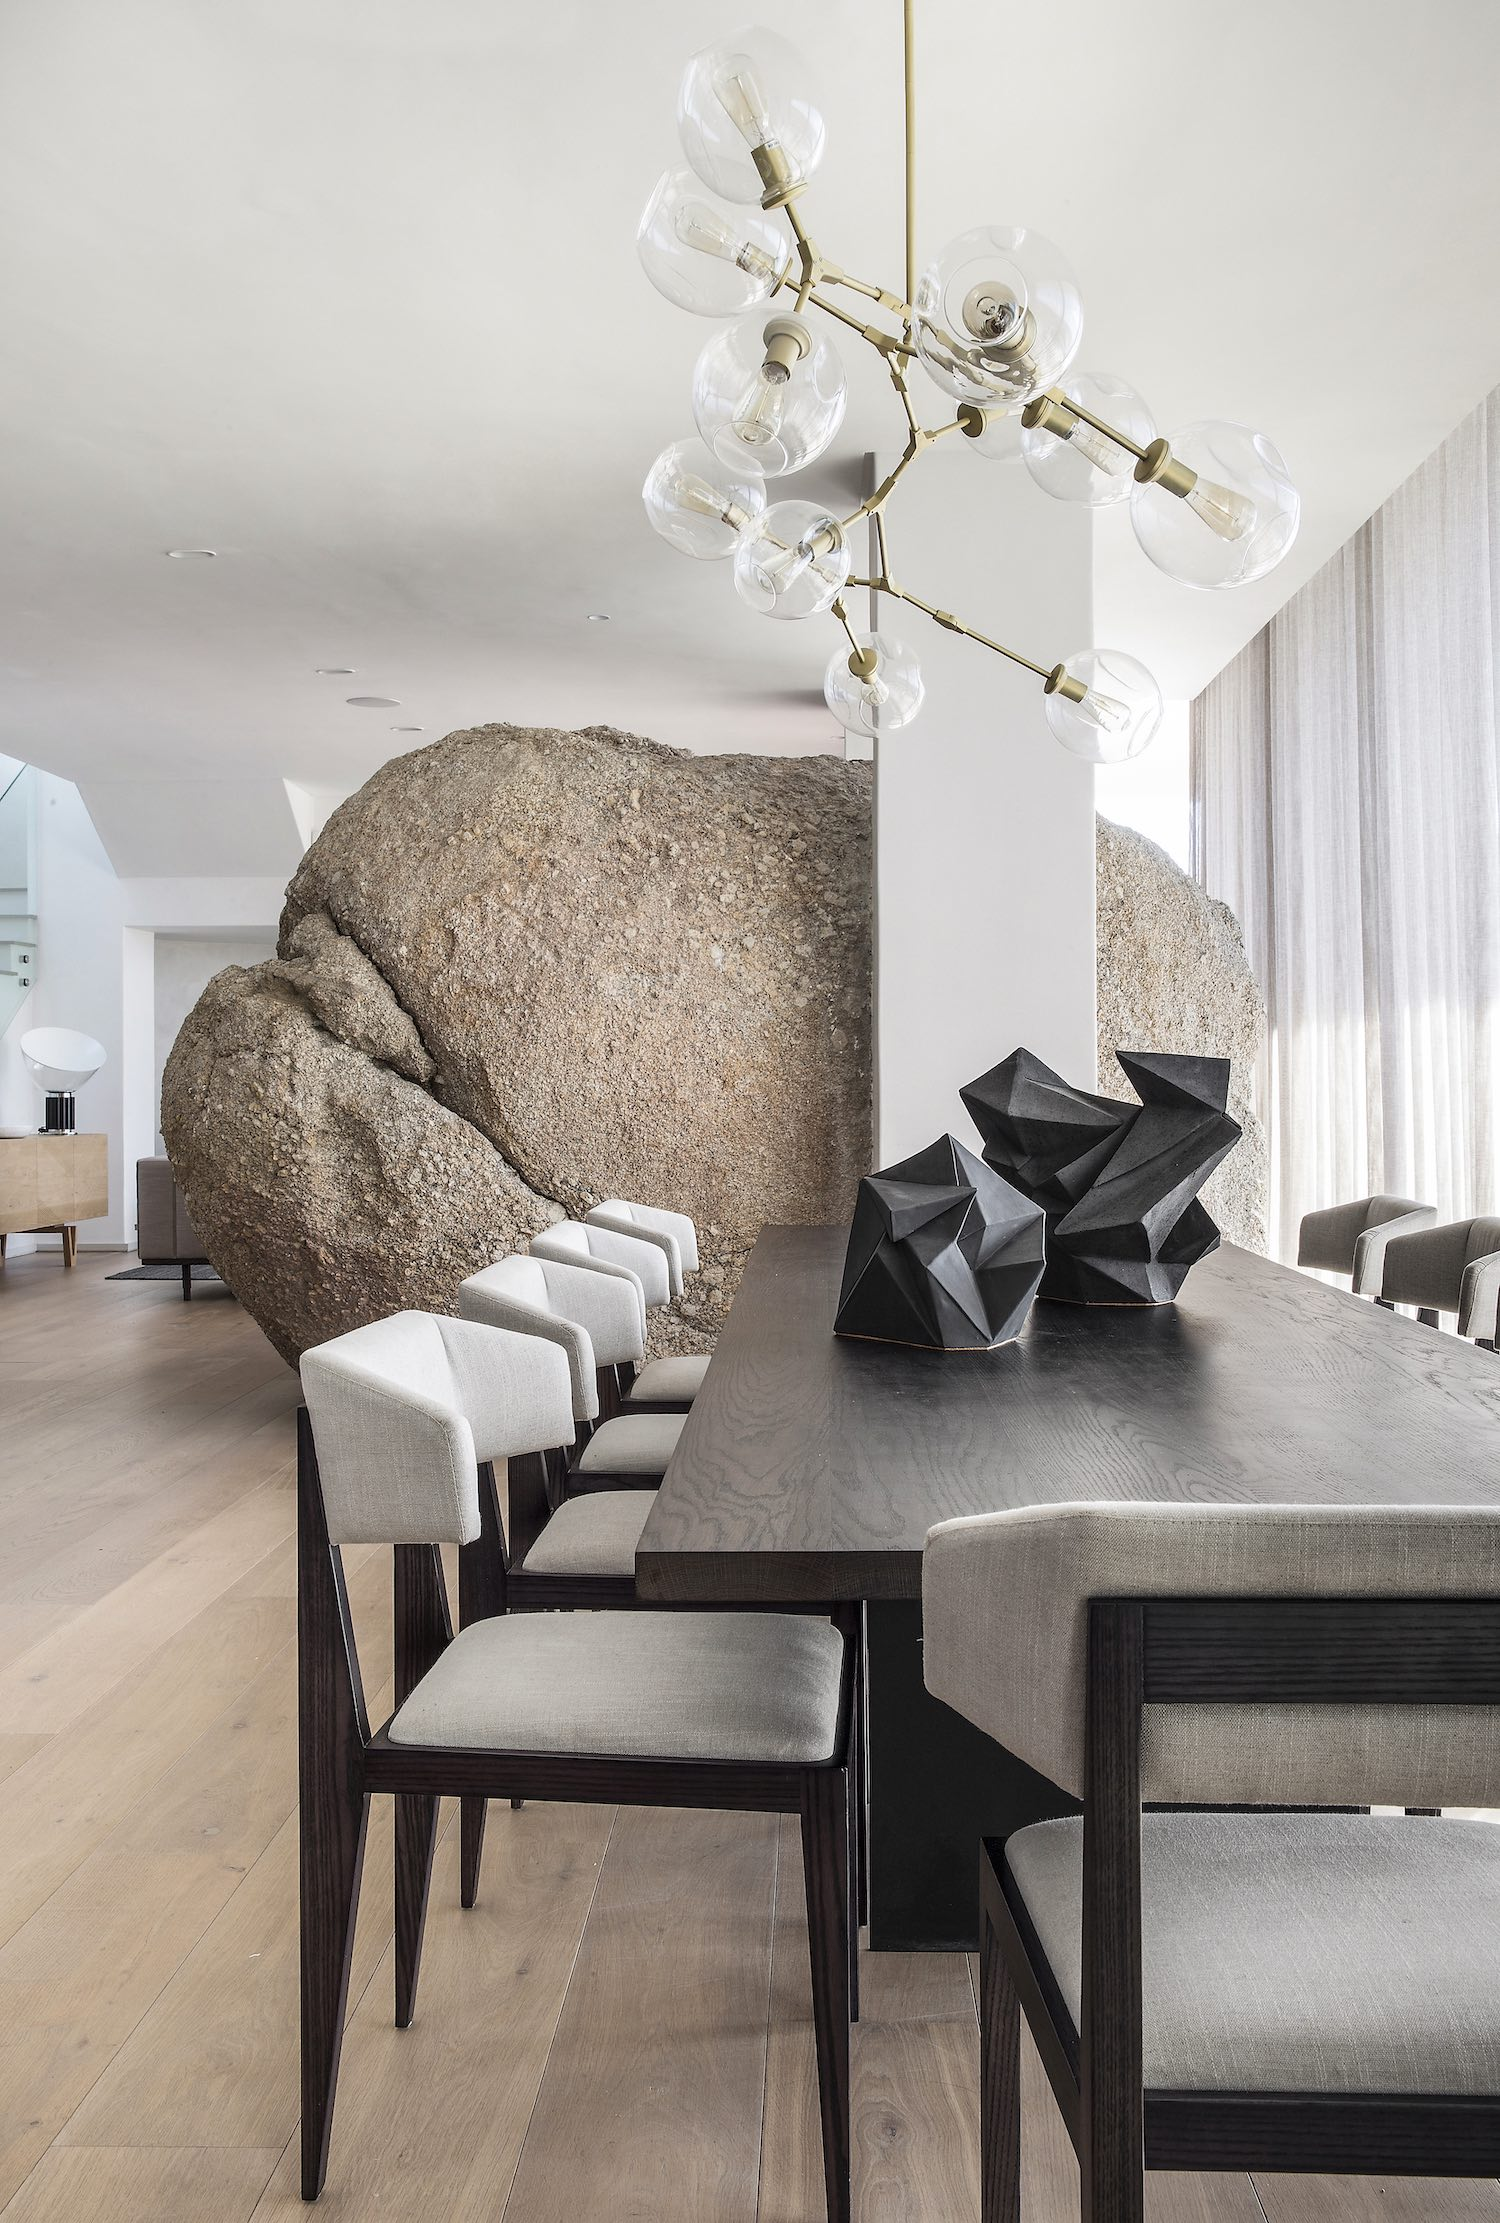 A HUGE ROCK INSIDE THE HOUSE NEAR THE DINING TABLE